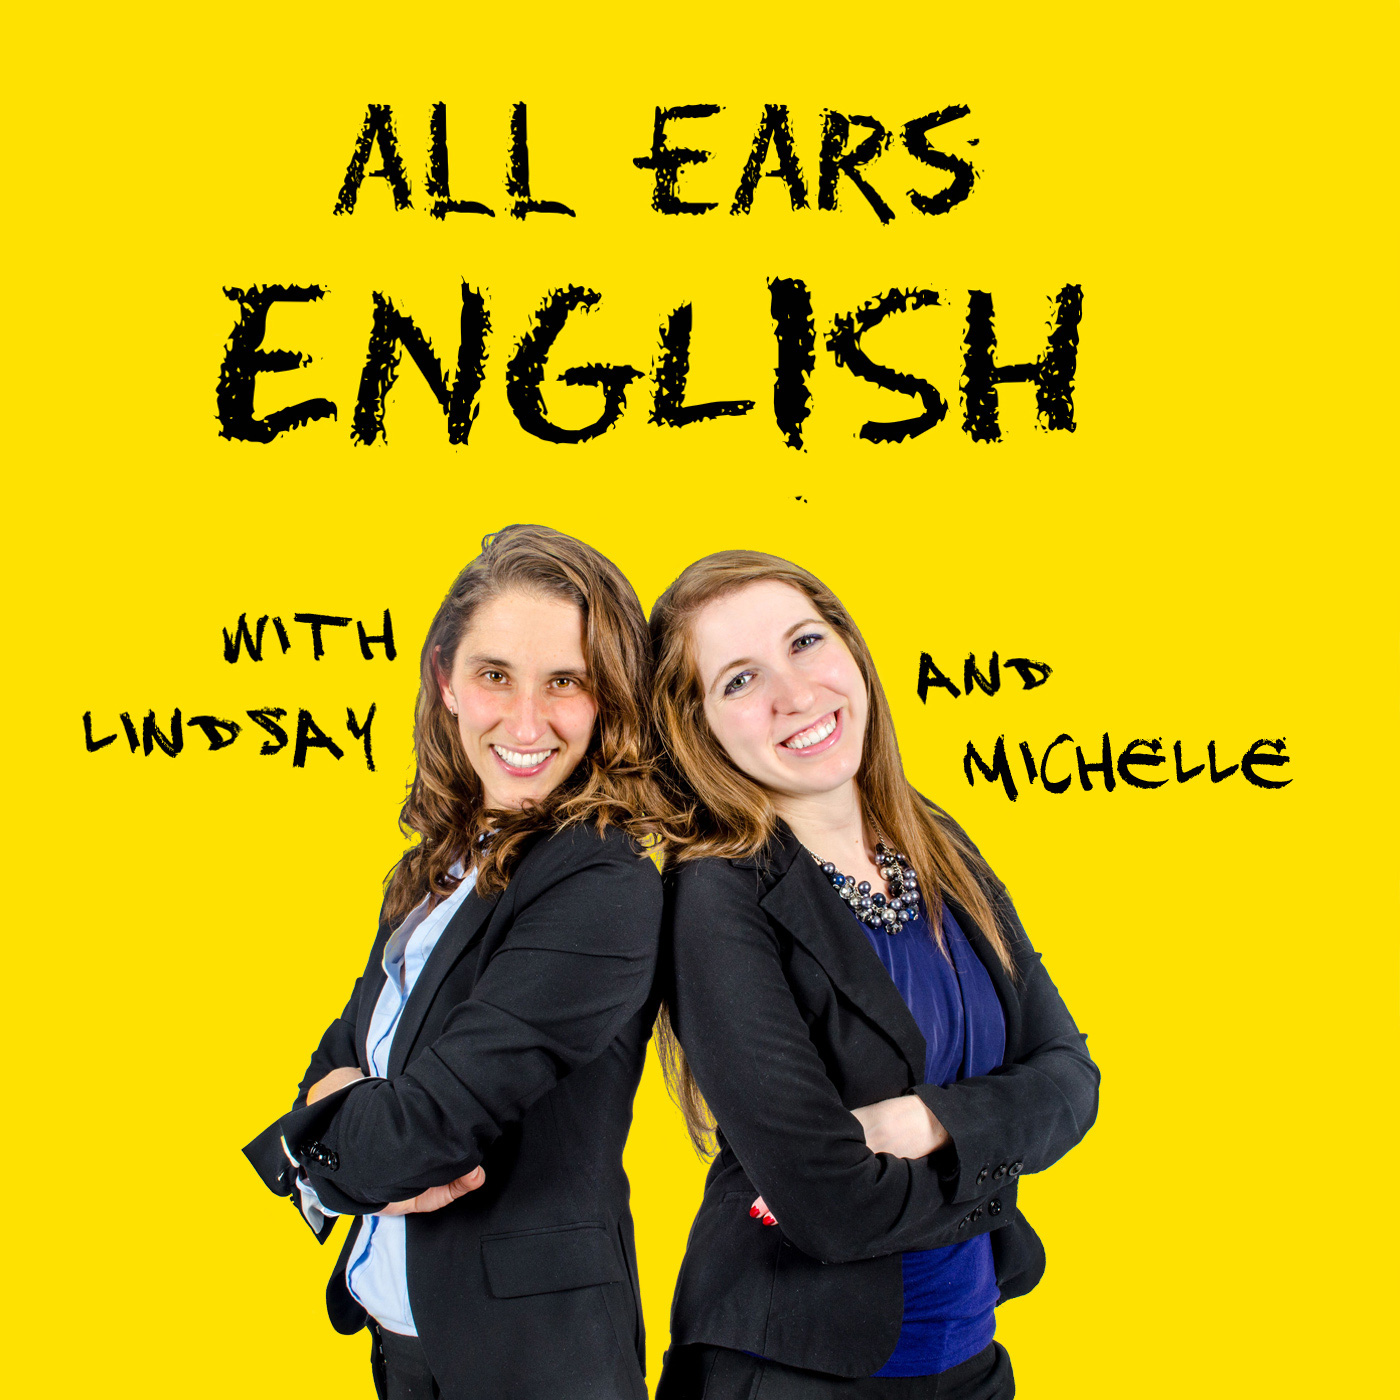 AEE 1548: English Pronunciation Myths Debunked! Learn 1 Way to Say the Past Tense